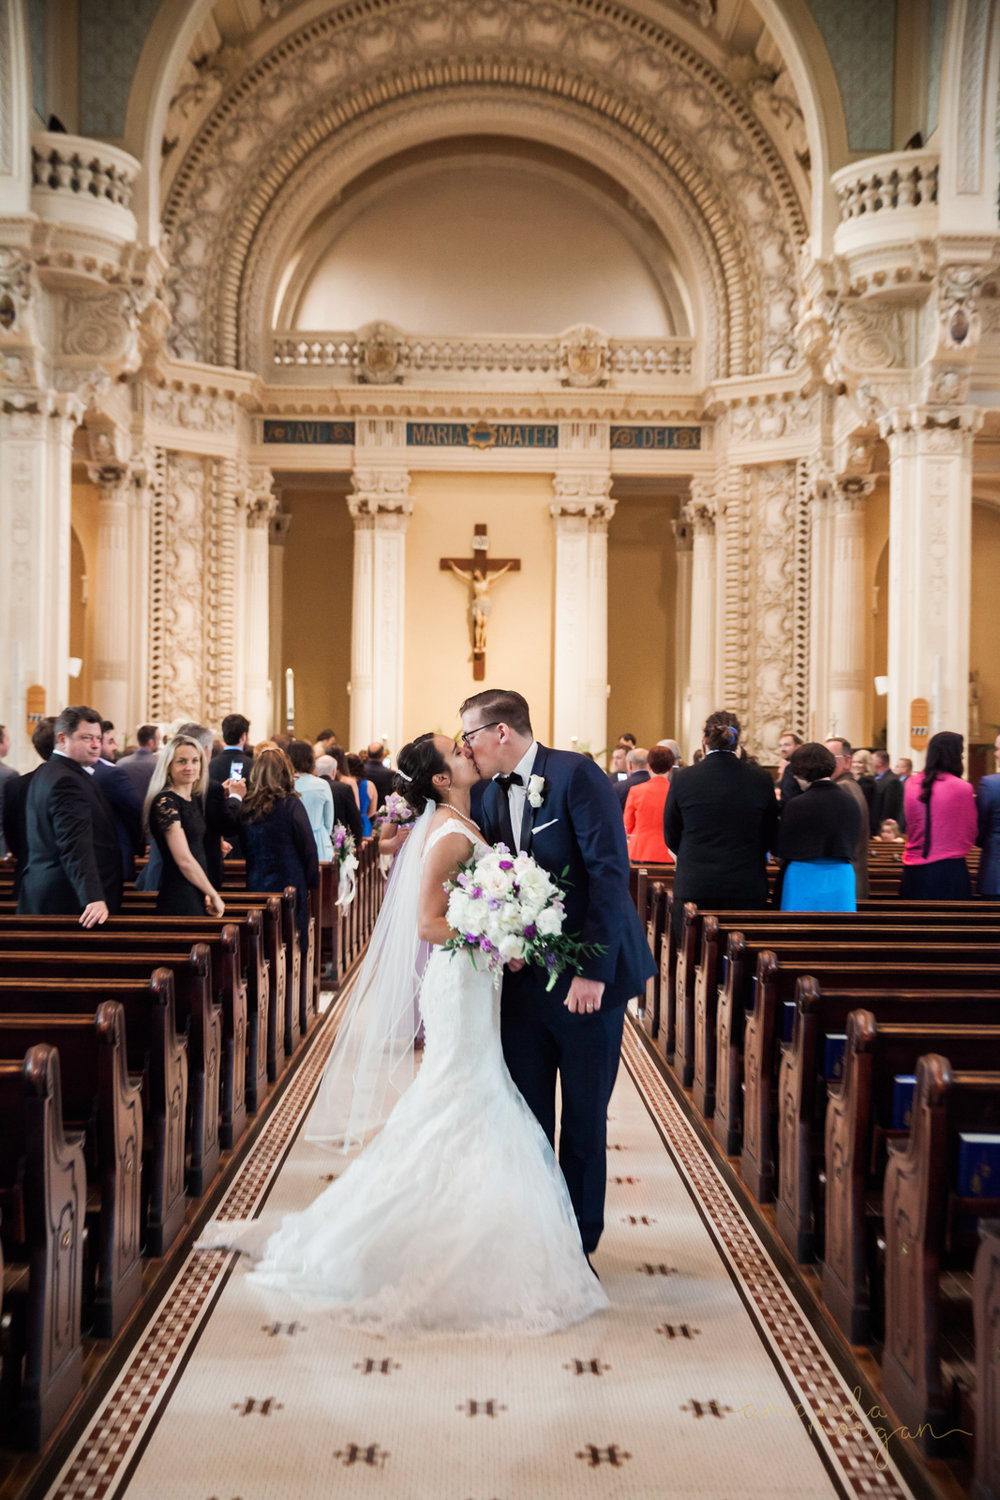 Notre-Dame-Catholic-Church-Wedding-Amanda-Morgan-9.jpg